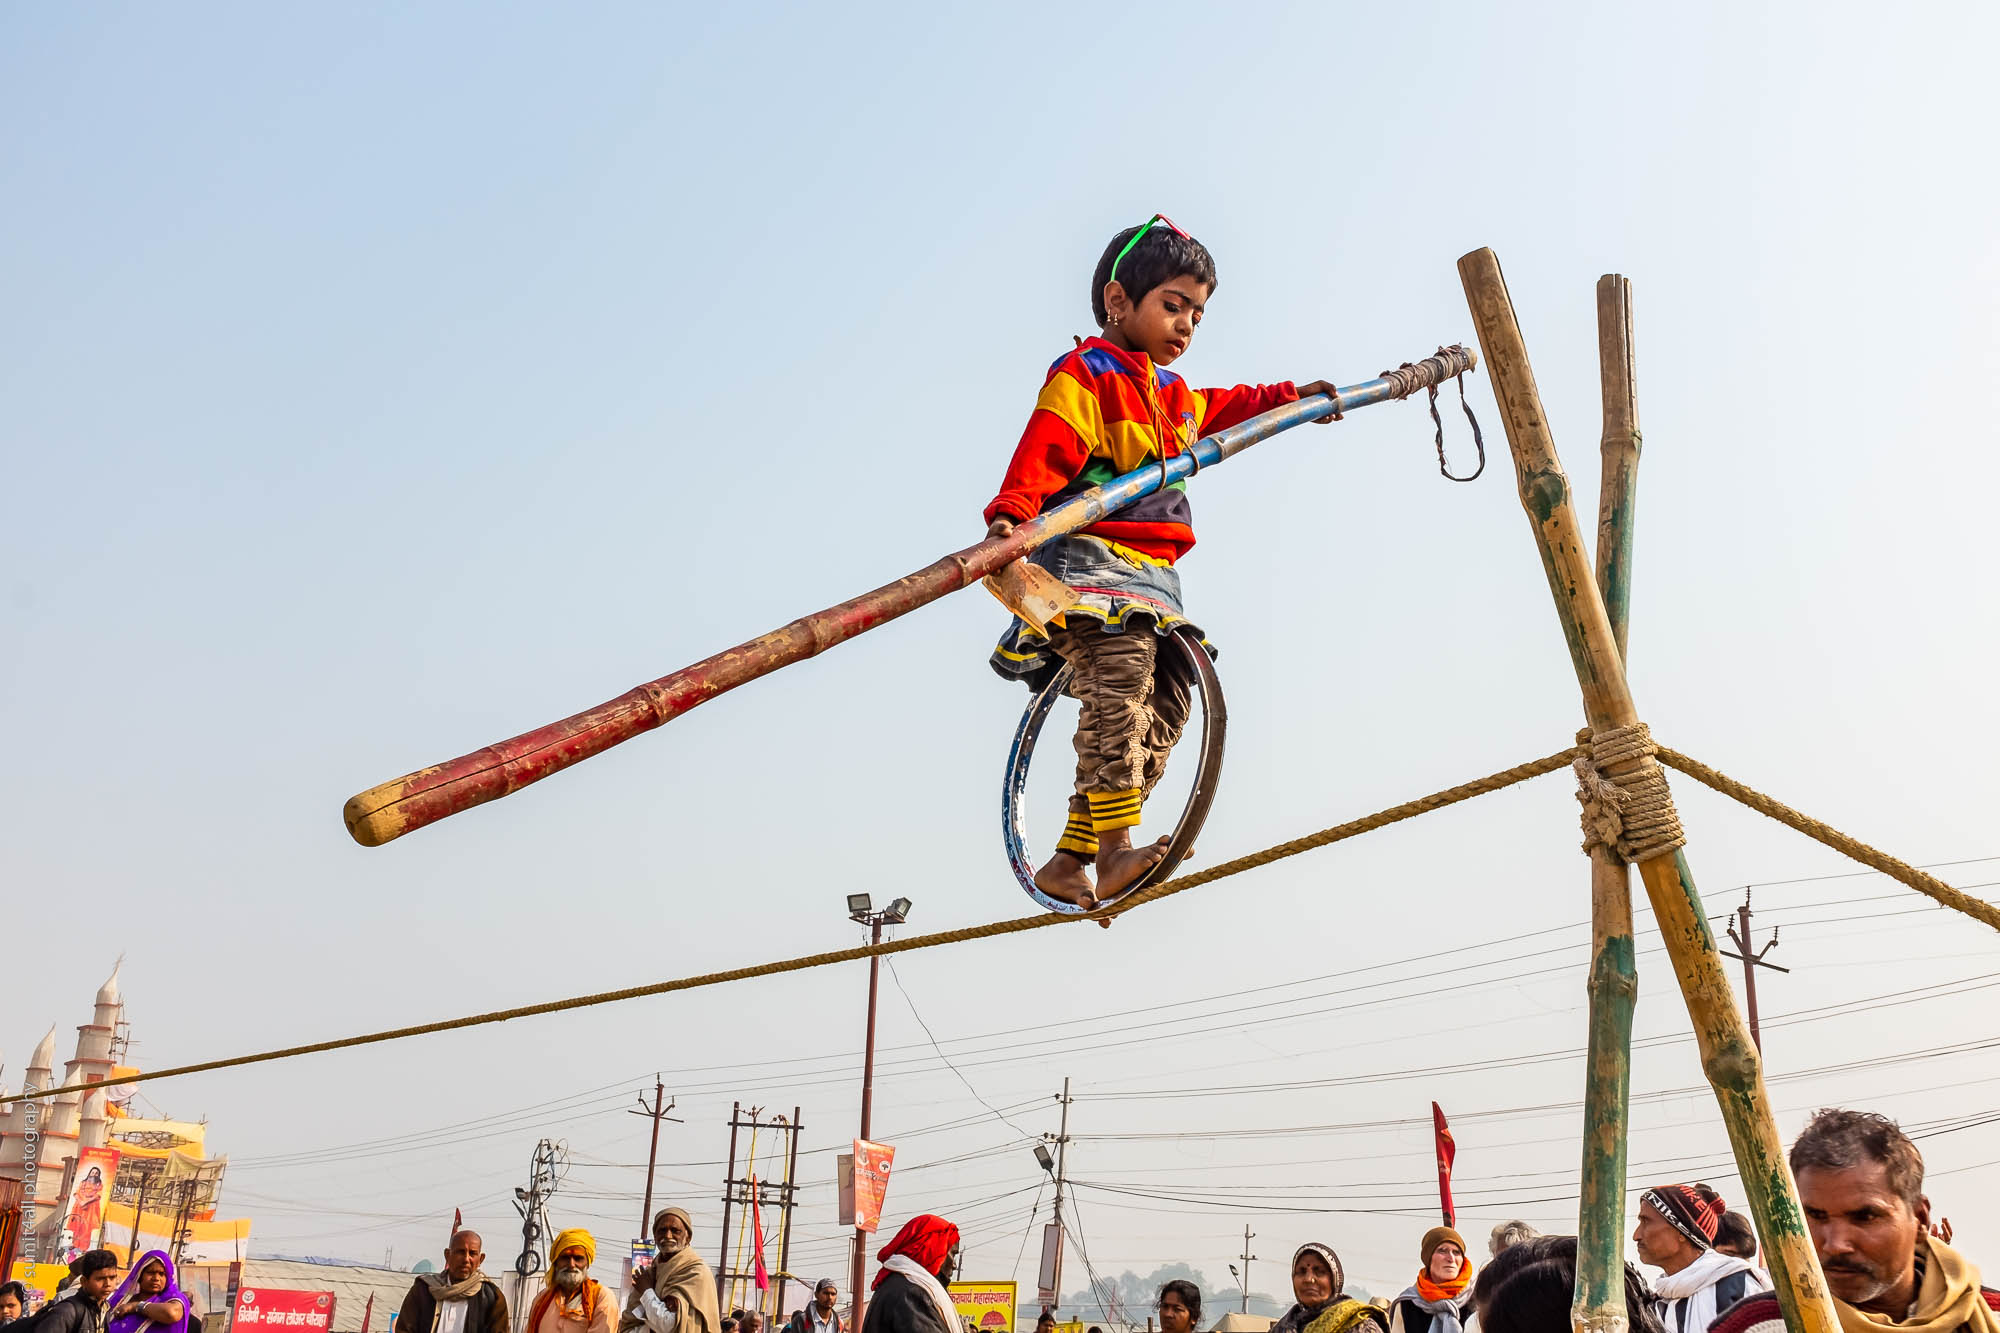 A Child Performer during the Kumbh Mela 2019 in Allahabad (Prayagraj)